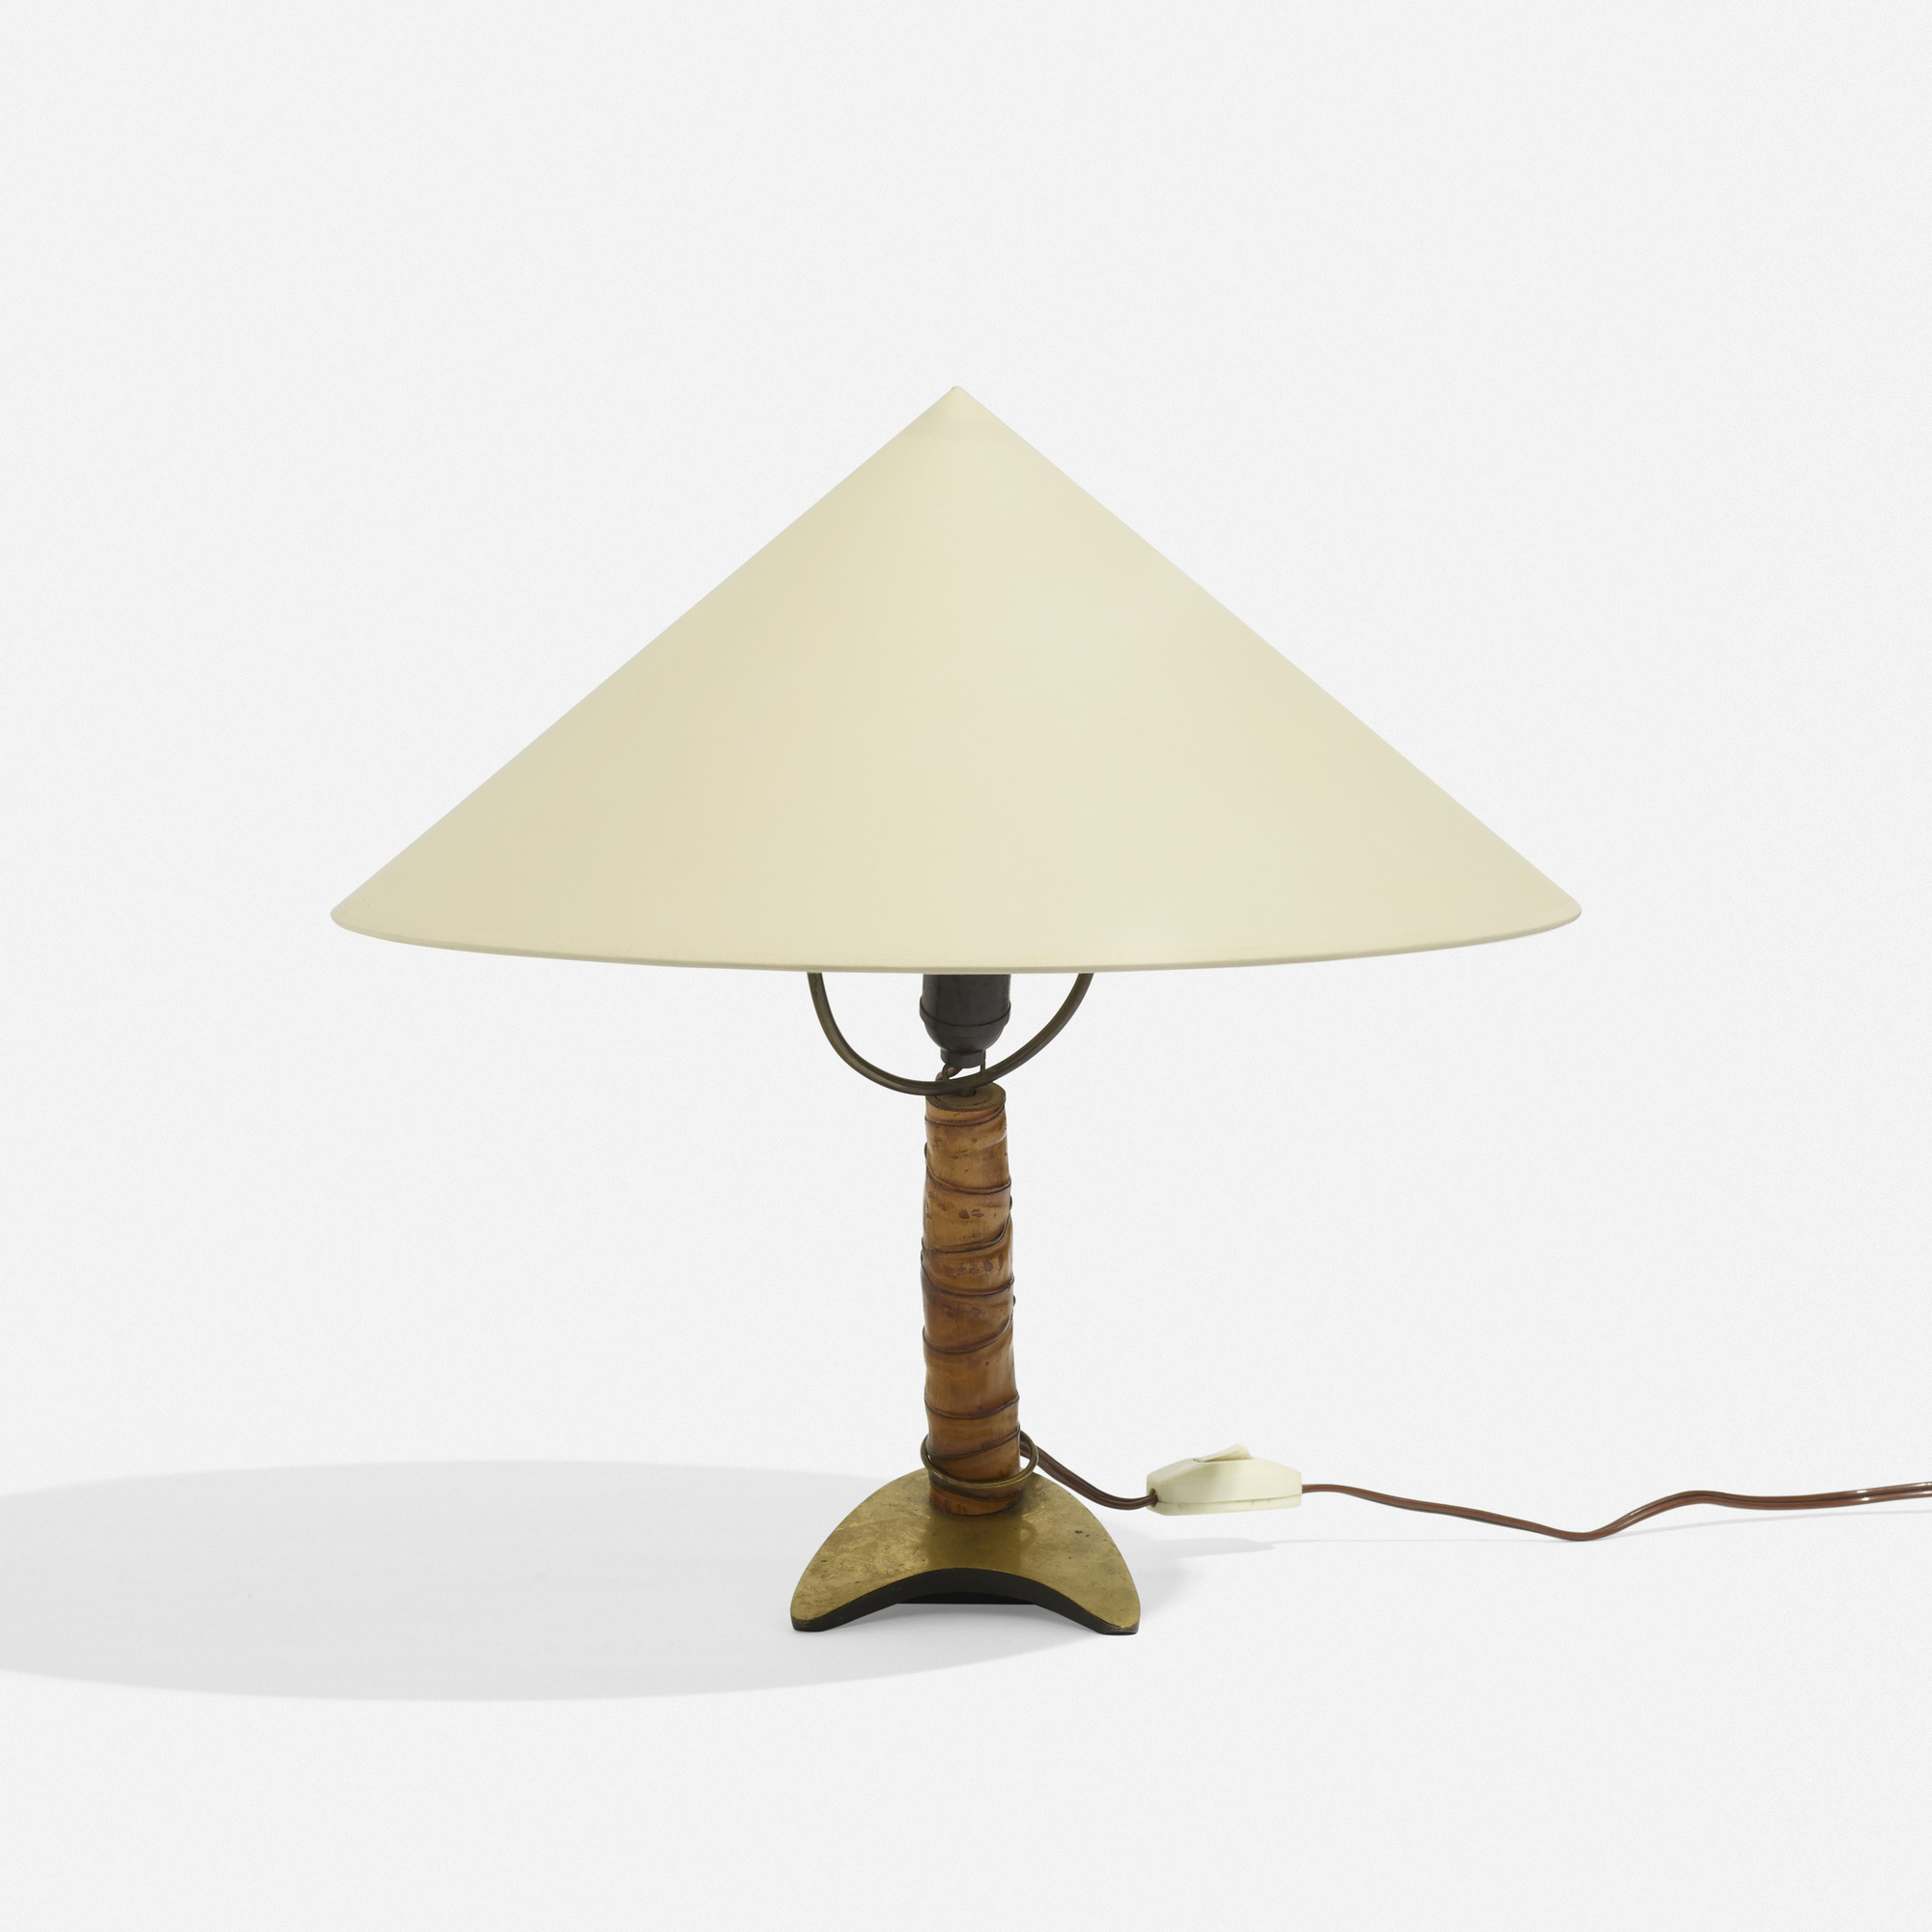 111: Carl Auböck II / table lamp (2 of 3)